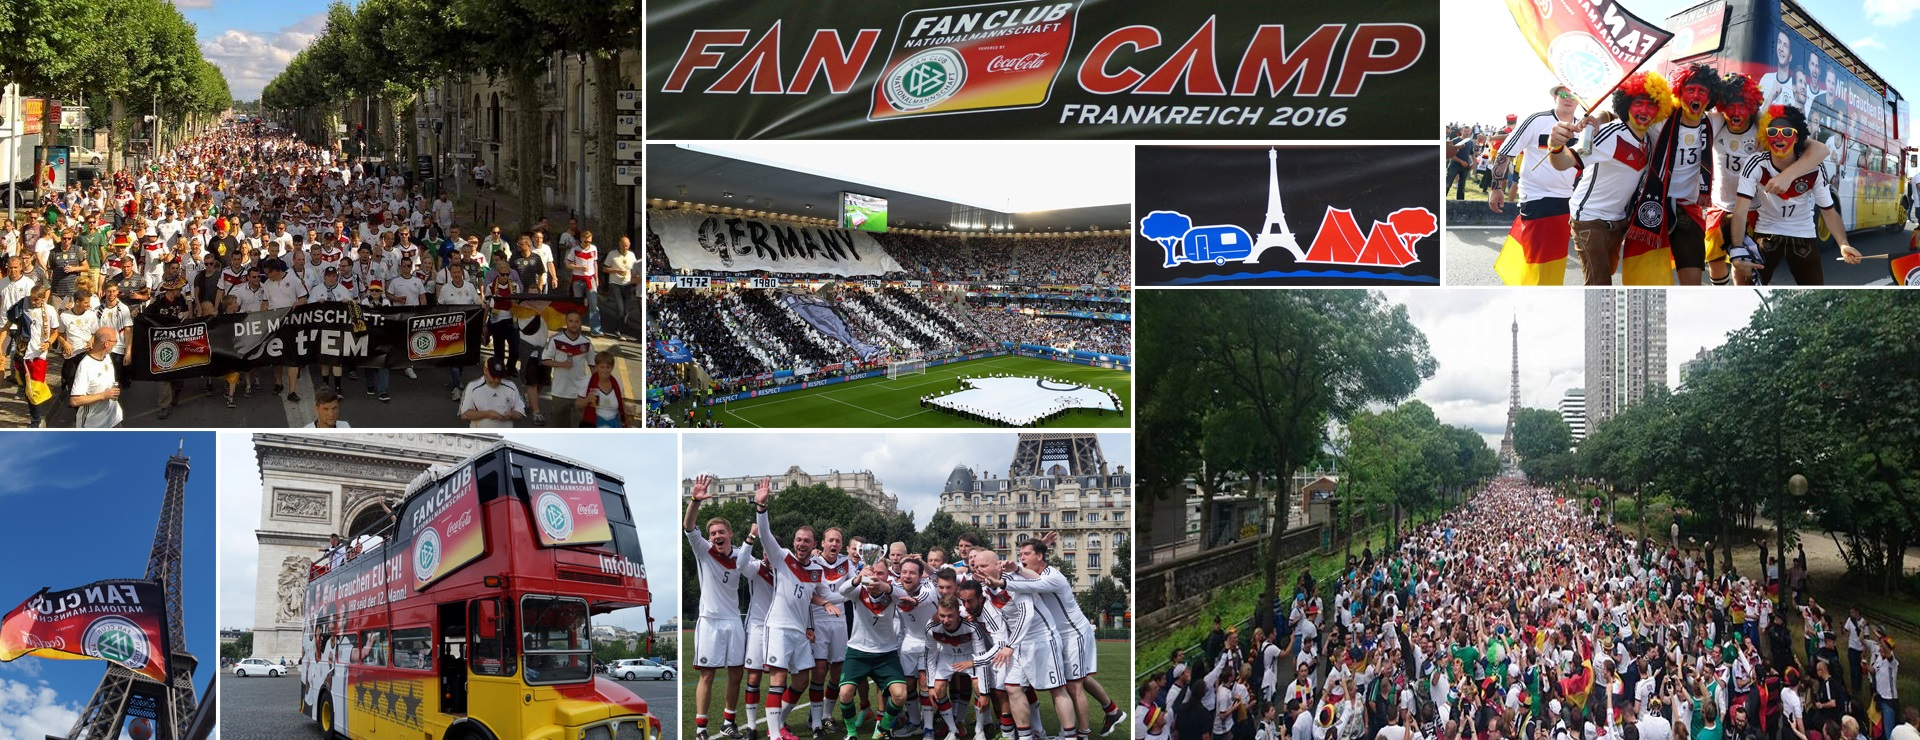 Blog-Fan-Camp